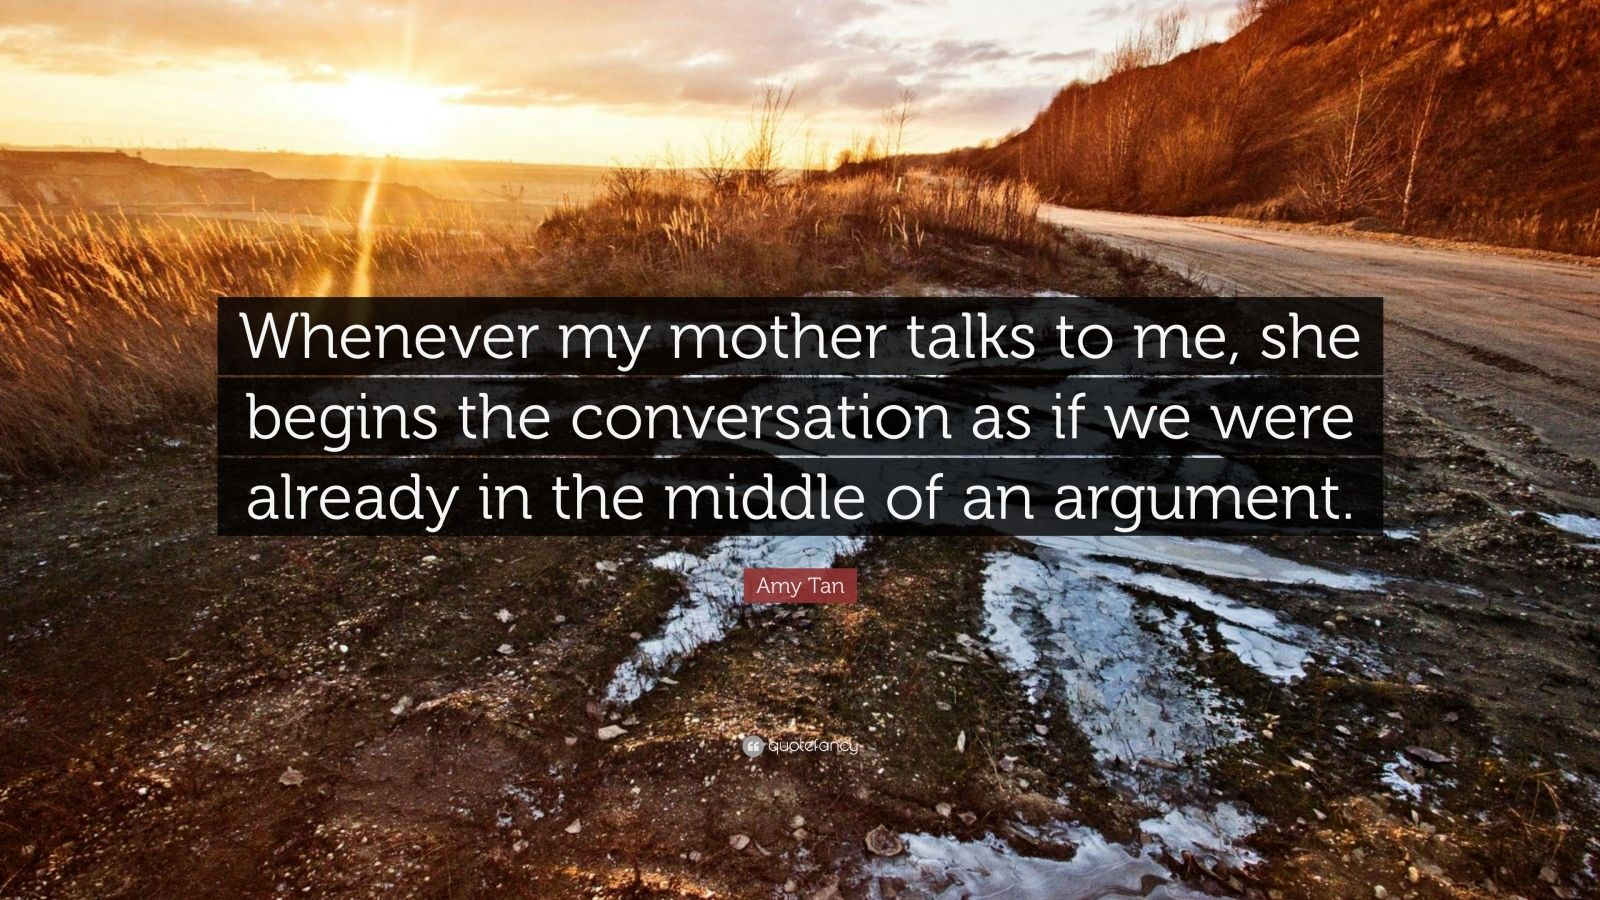 amy tan quotes 100  amy tan quote whenever my mother talks to me she begins the conversation